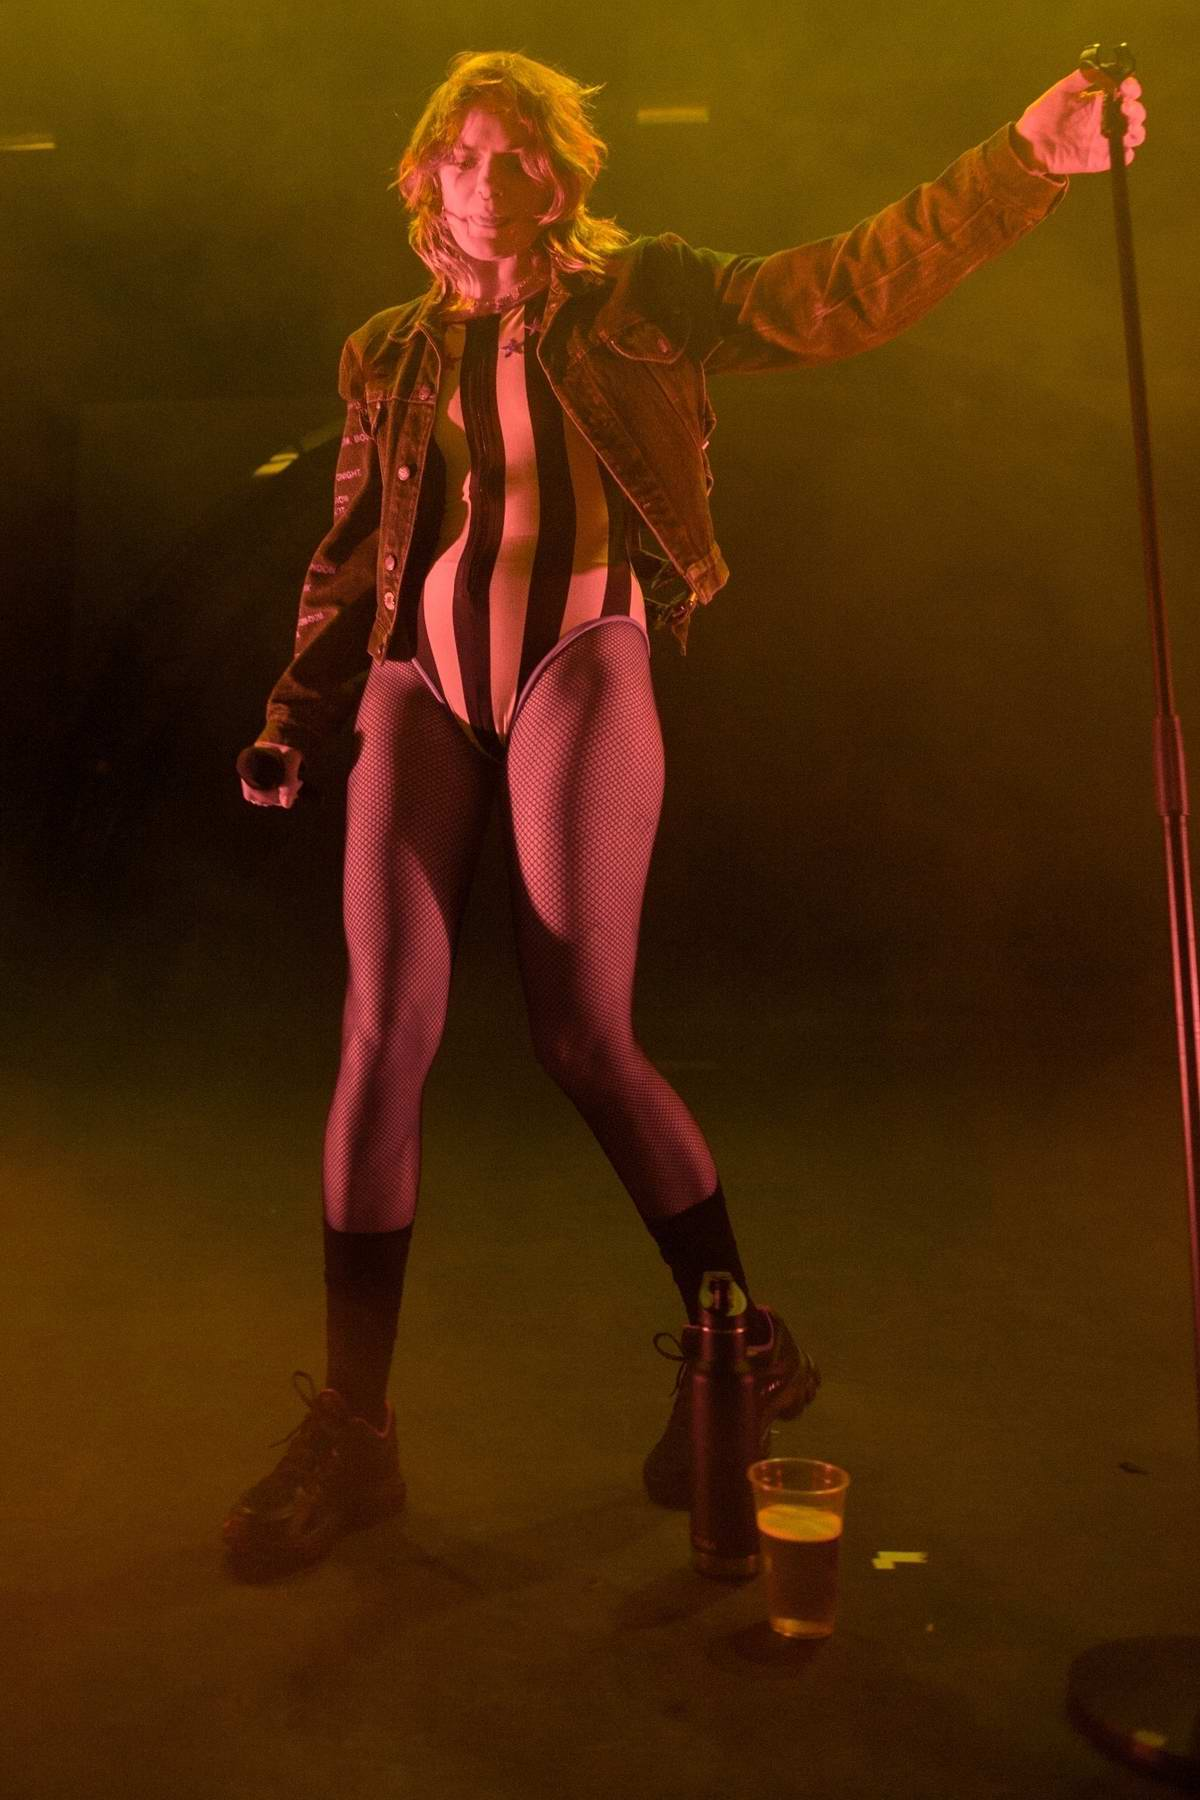 Tove Lo performs live at the O2 Forum Kentish Town in London, UK